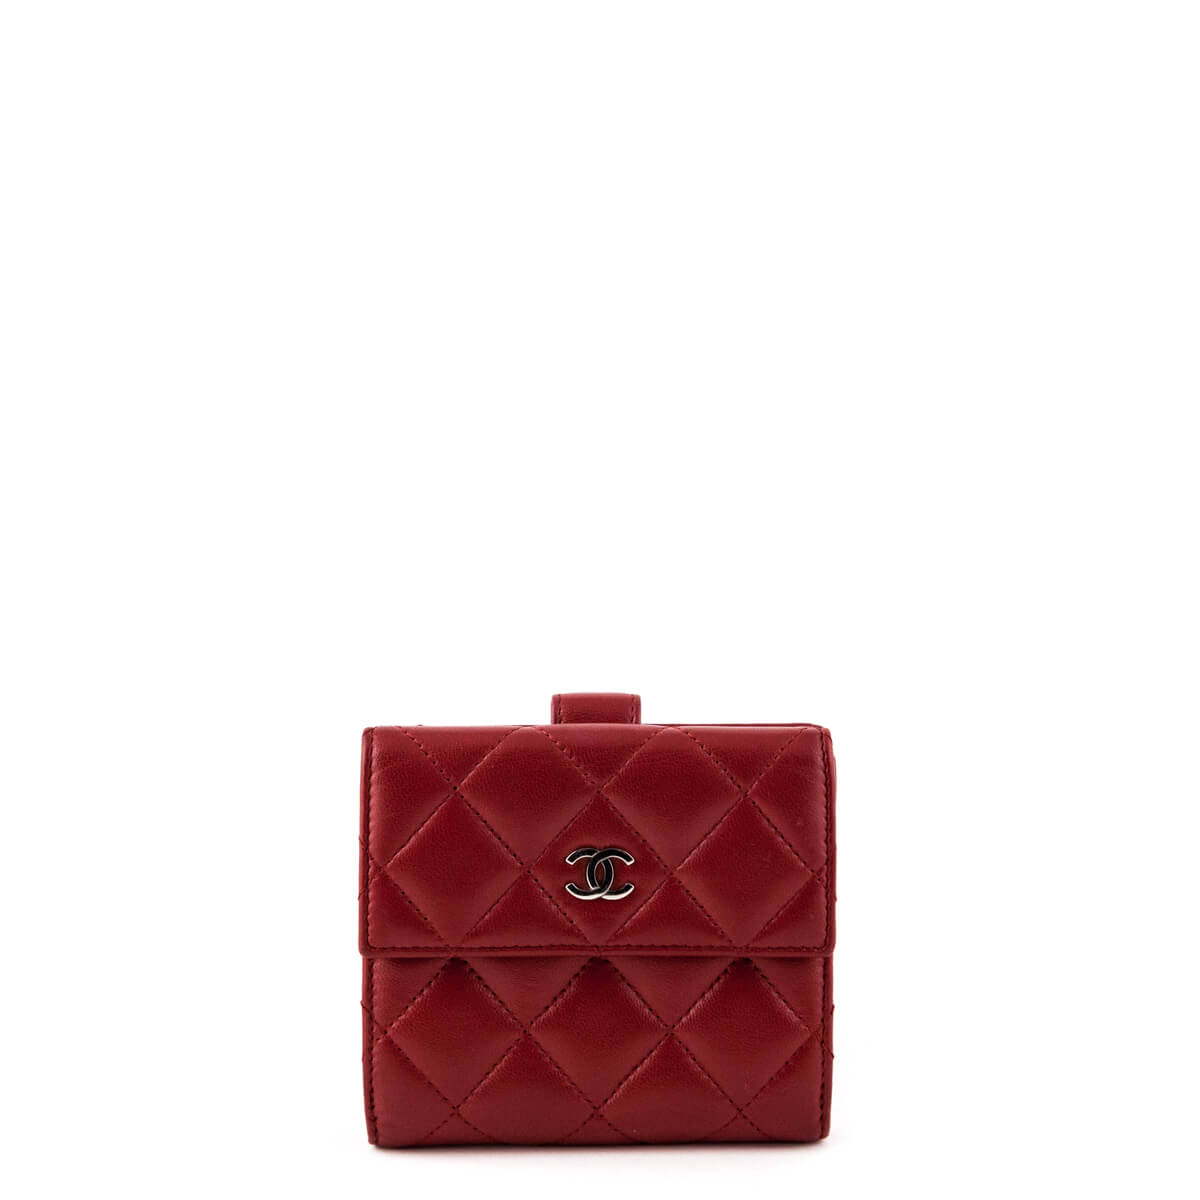 a44a62ce8f08 Chanel Red Quilted Lambskin Classic Compact Wallet - LOVE that BAG -  Preowned Authentic Designer Handbags ...